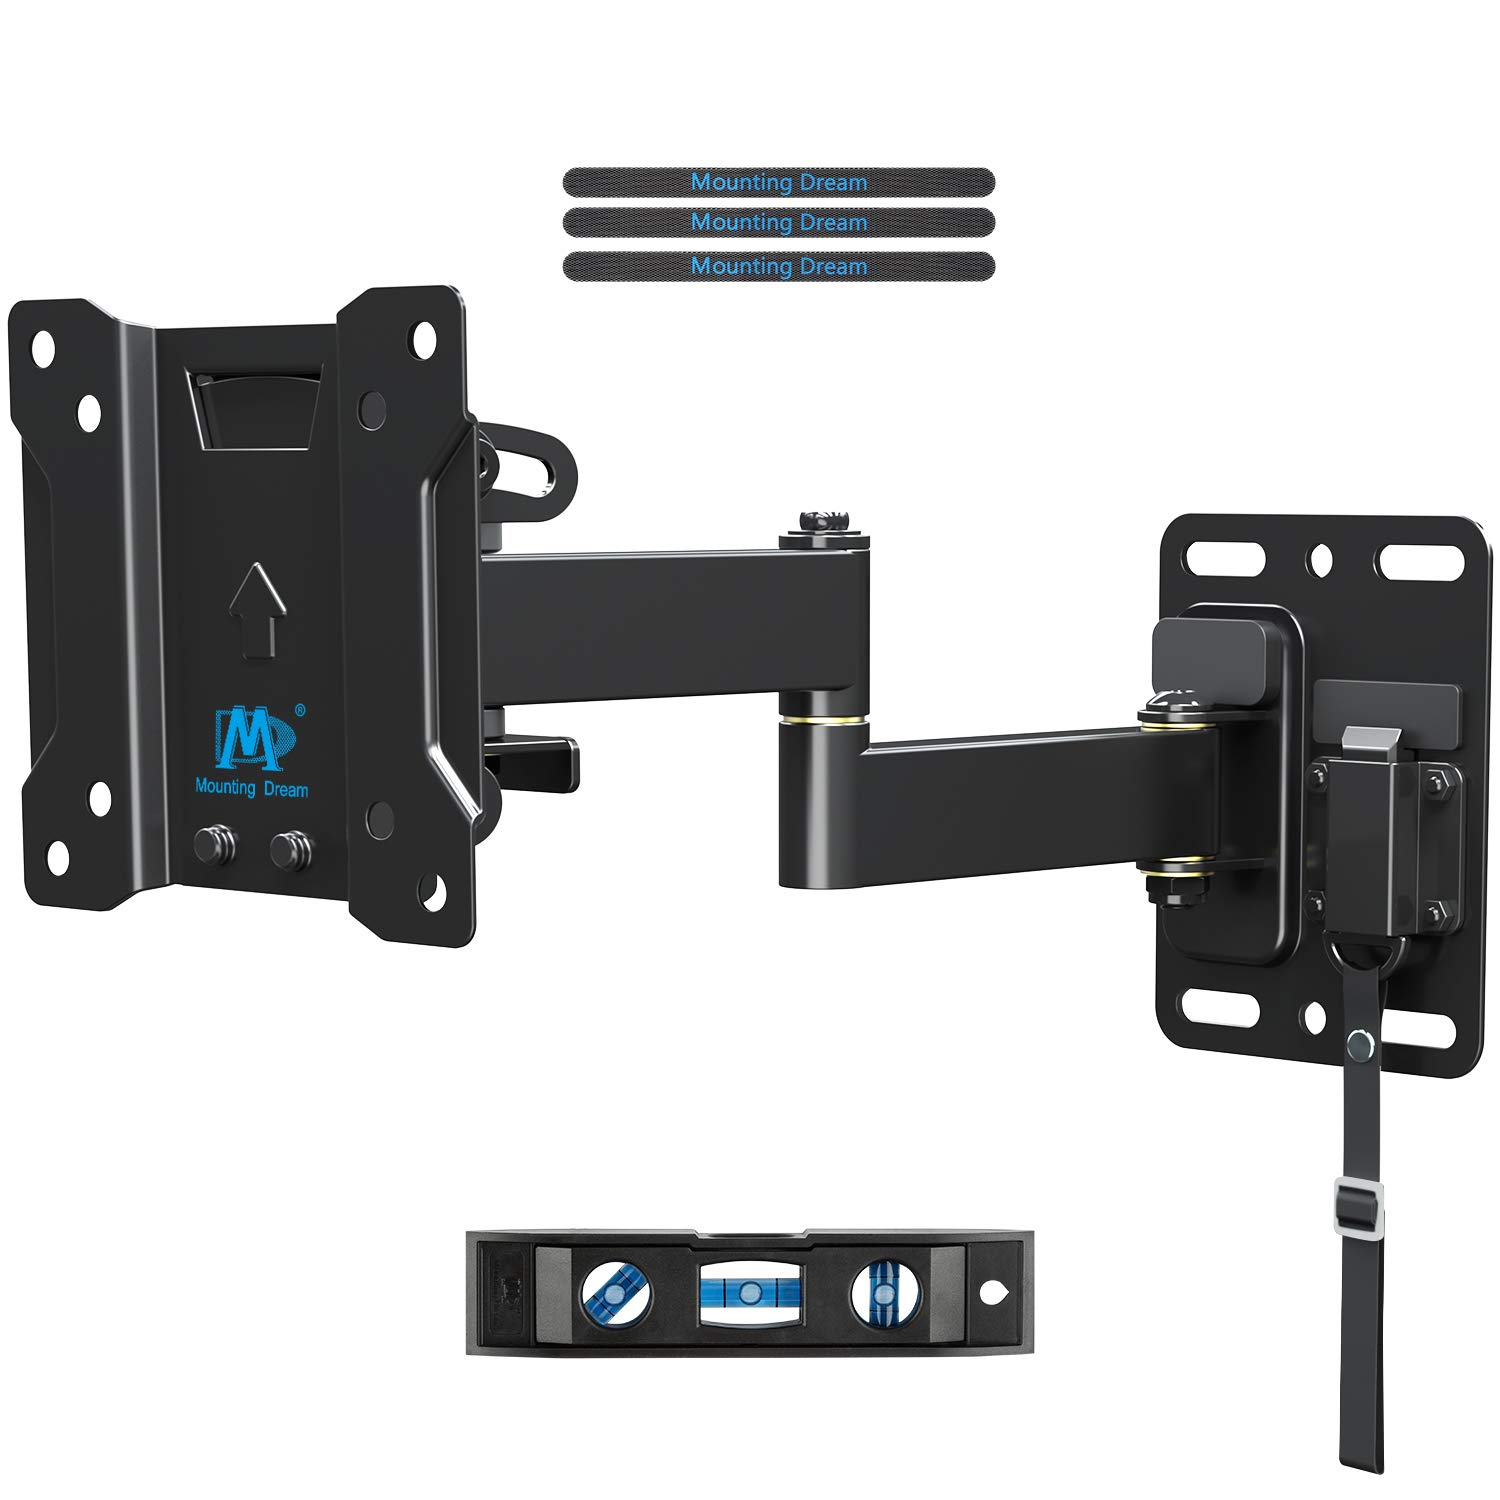 TV Mount Lockable RV TV Mount for 10-26 Inch Flat Screen TV, RV Mount for Camper Marine Boat Trailer, Easy One Step Lock Full Motion RV TV Wall Mount up to VESA 100x100mm, 22 LBS Mounting Dream MD2209 by Mounting Dream